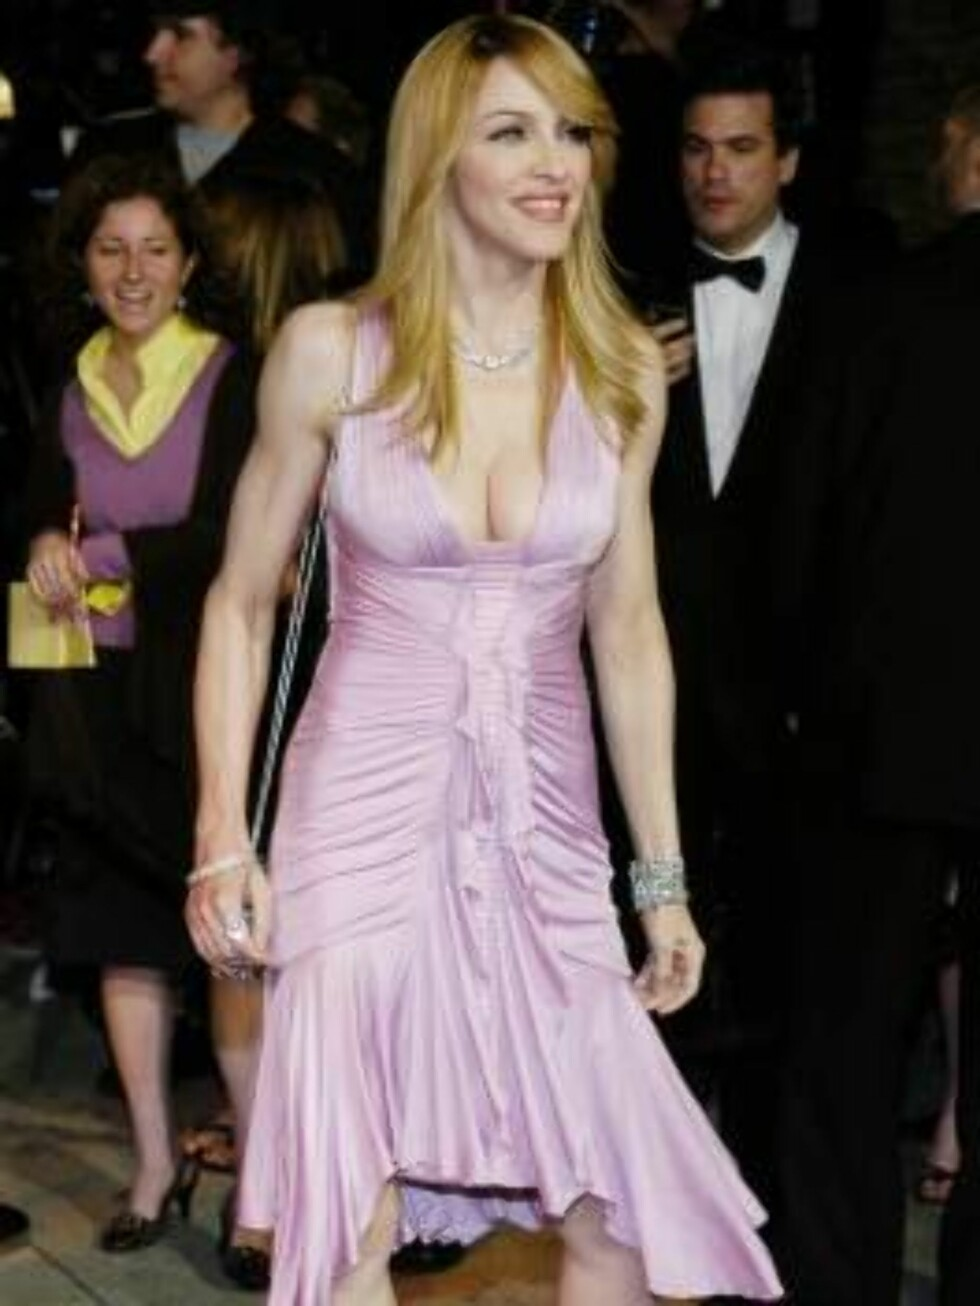 Madonna arrives at the annual Vanity Fair Oscar party at Morton's in West Hollywood, Calif., Sunday, March 5, 2006. (AP Photo/Chris Pizzello) Foto: AP/Scanpix